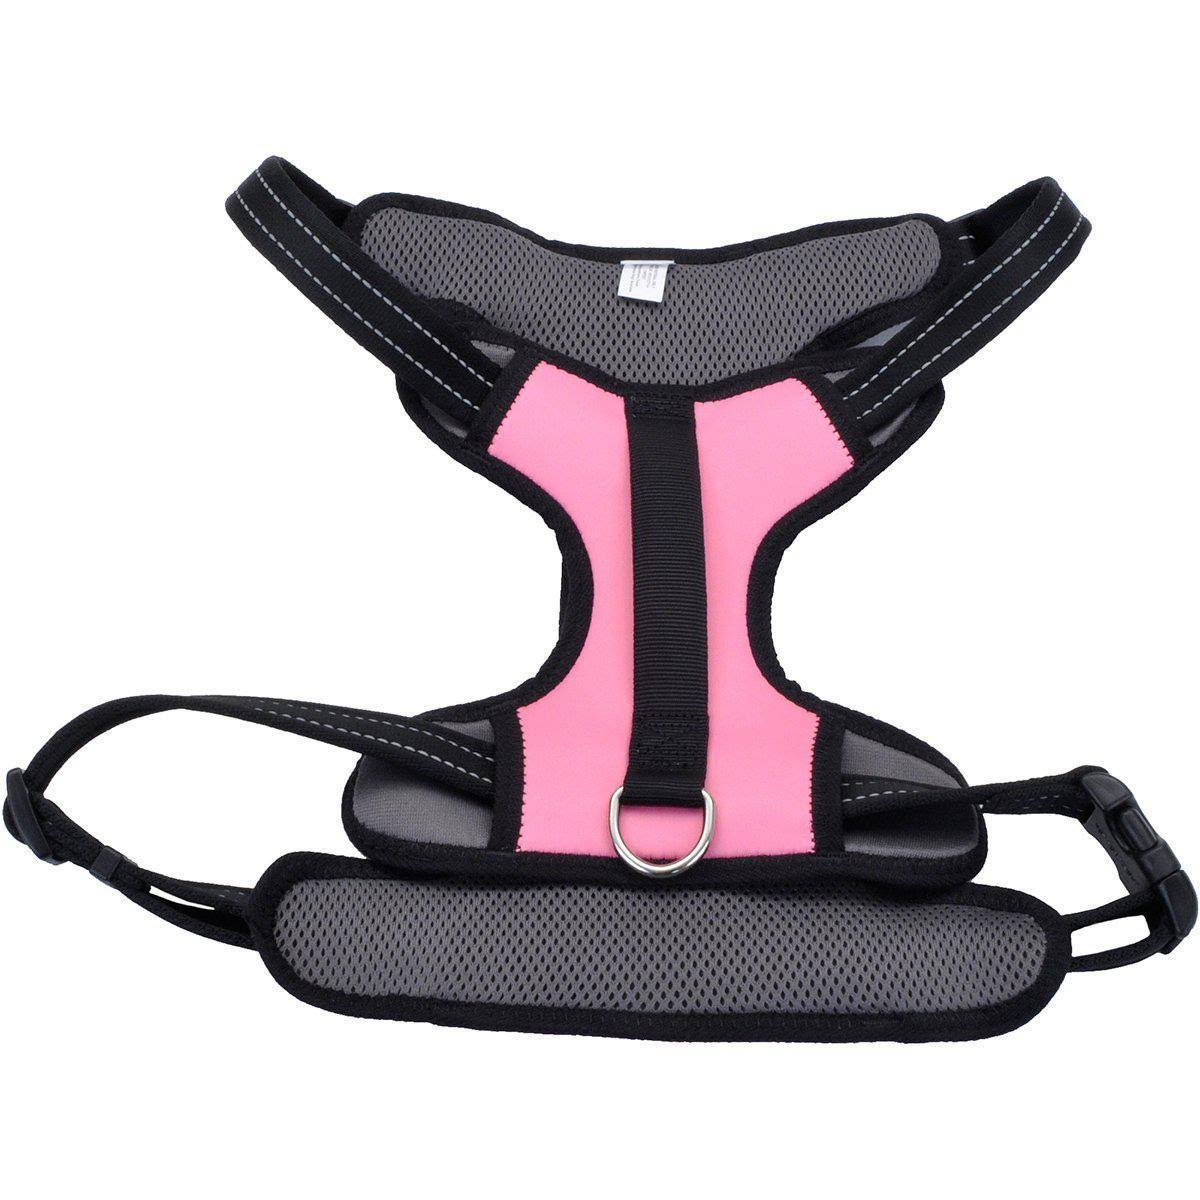 Coastal Reflective Control Handle Harness - Pink Extra Large